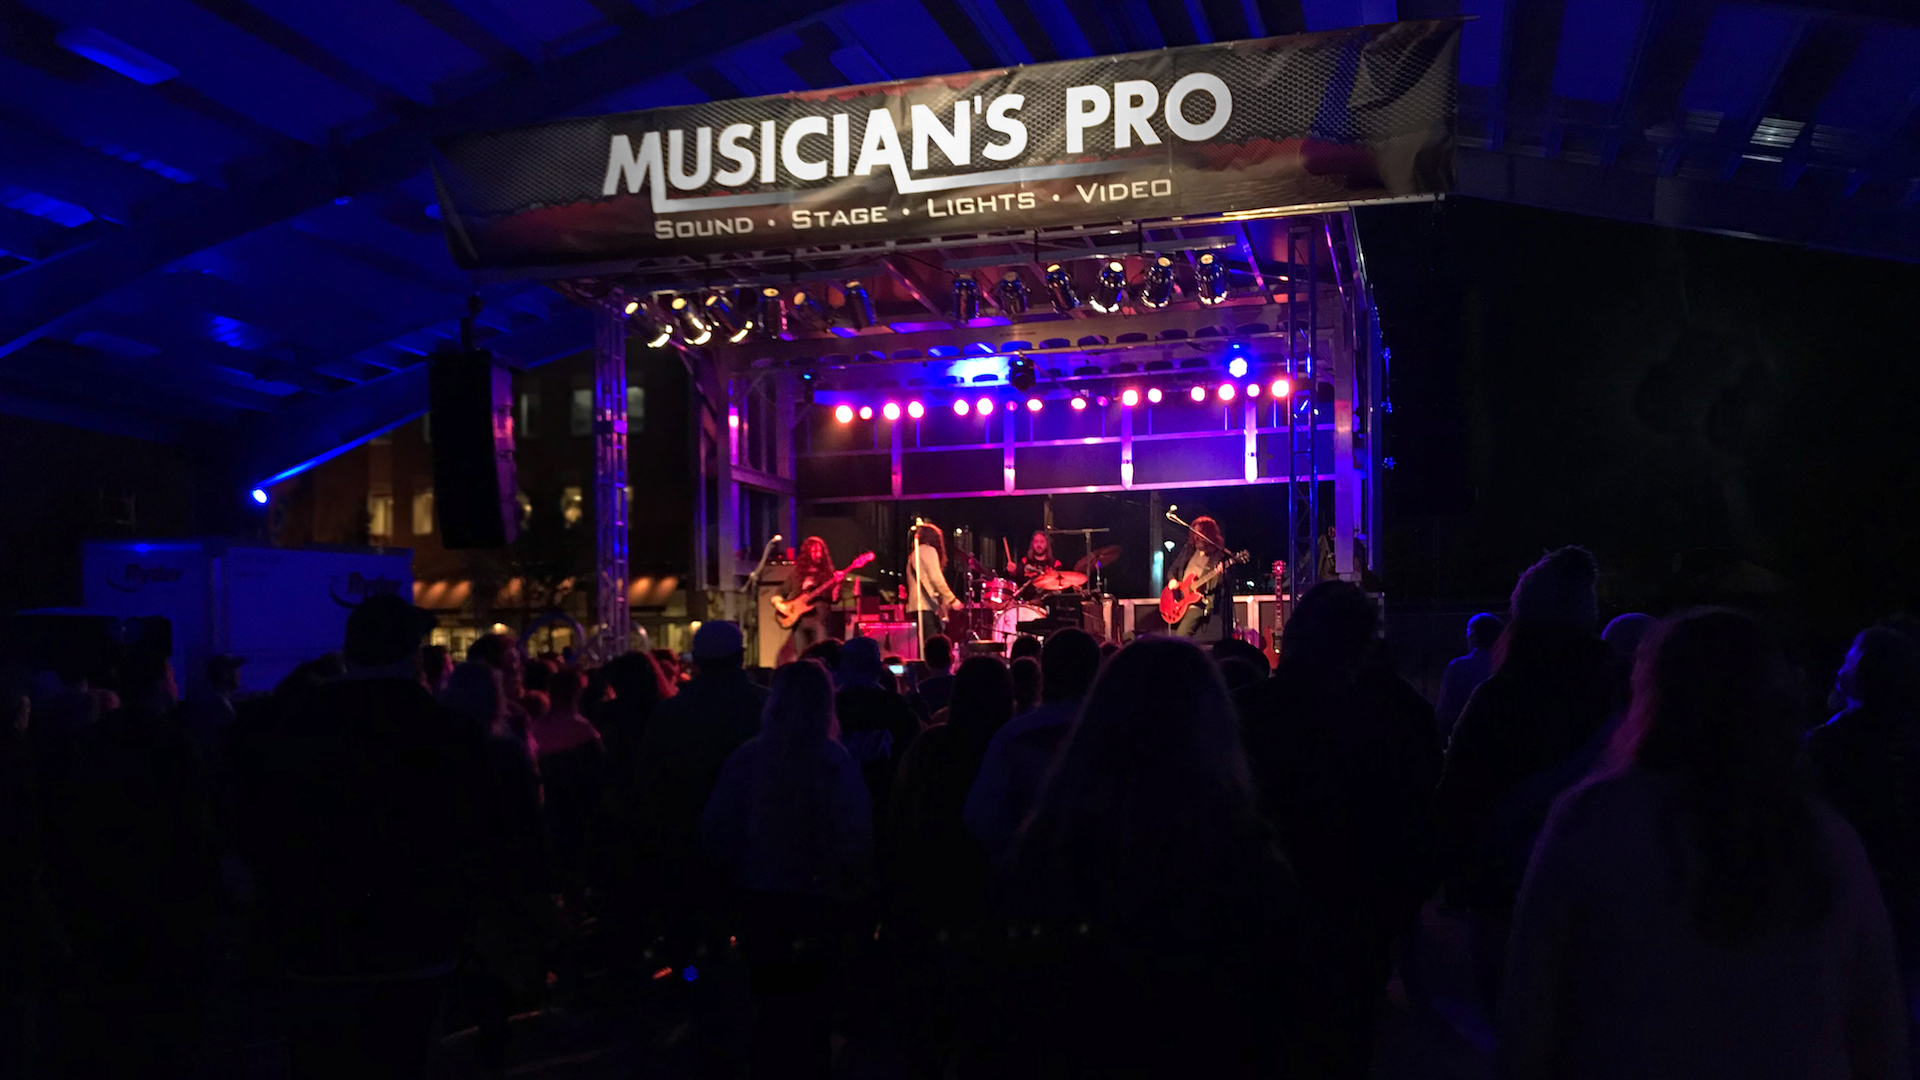 Musician's Pro | Mobile Stage Truck Sound Lighting Rentals